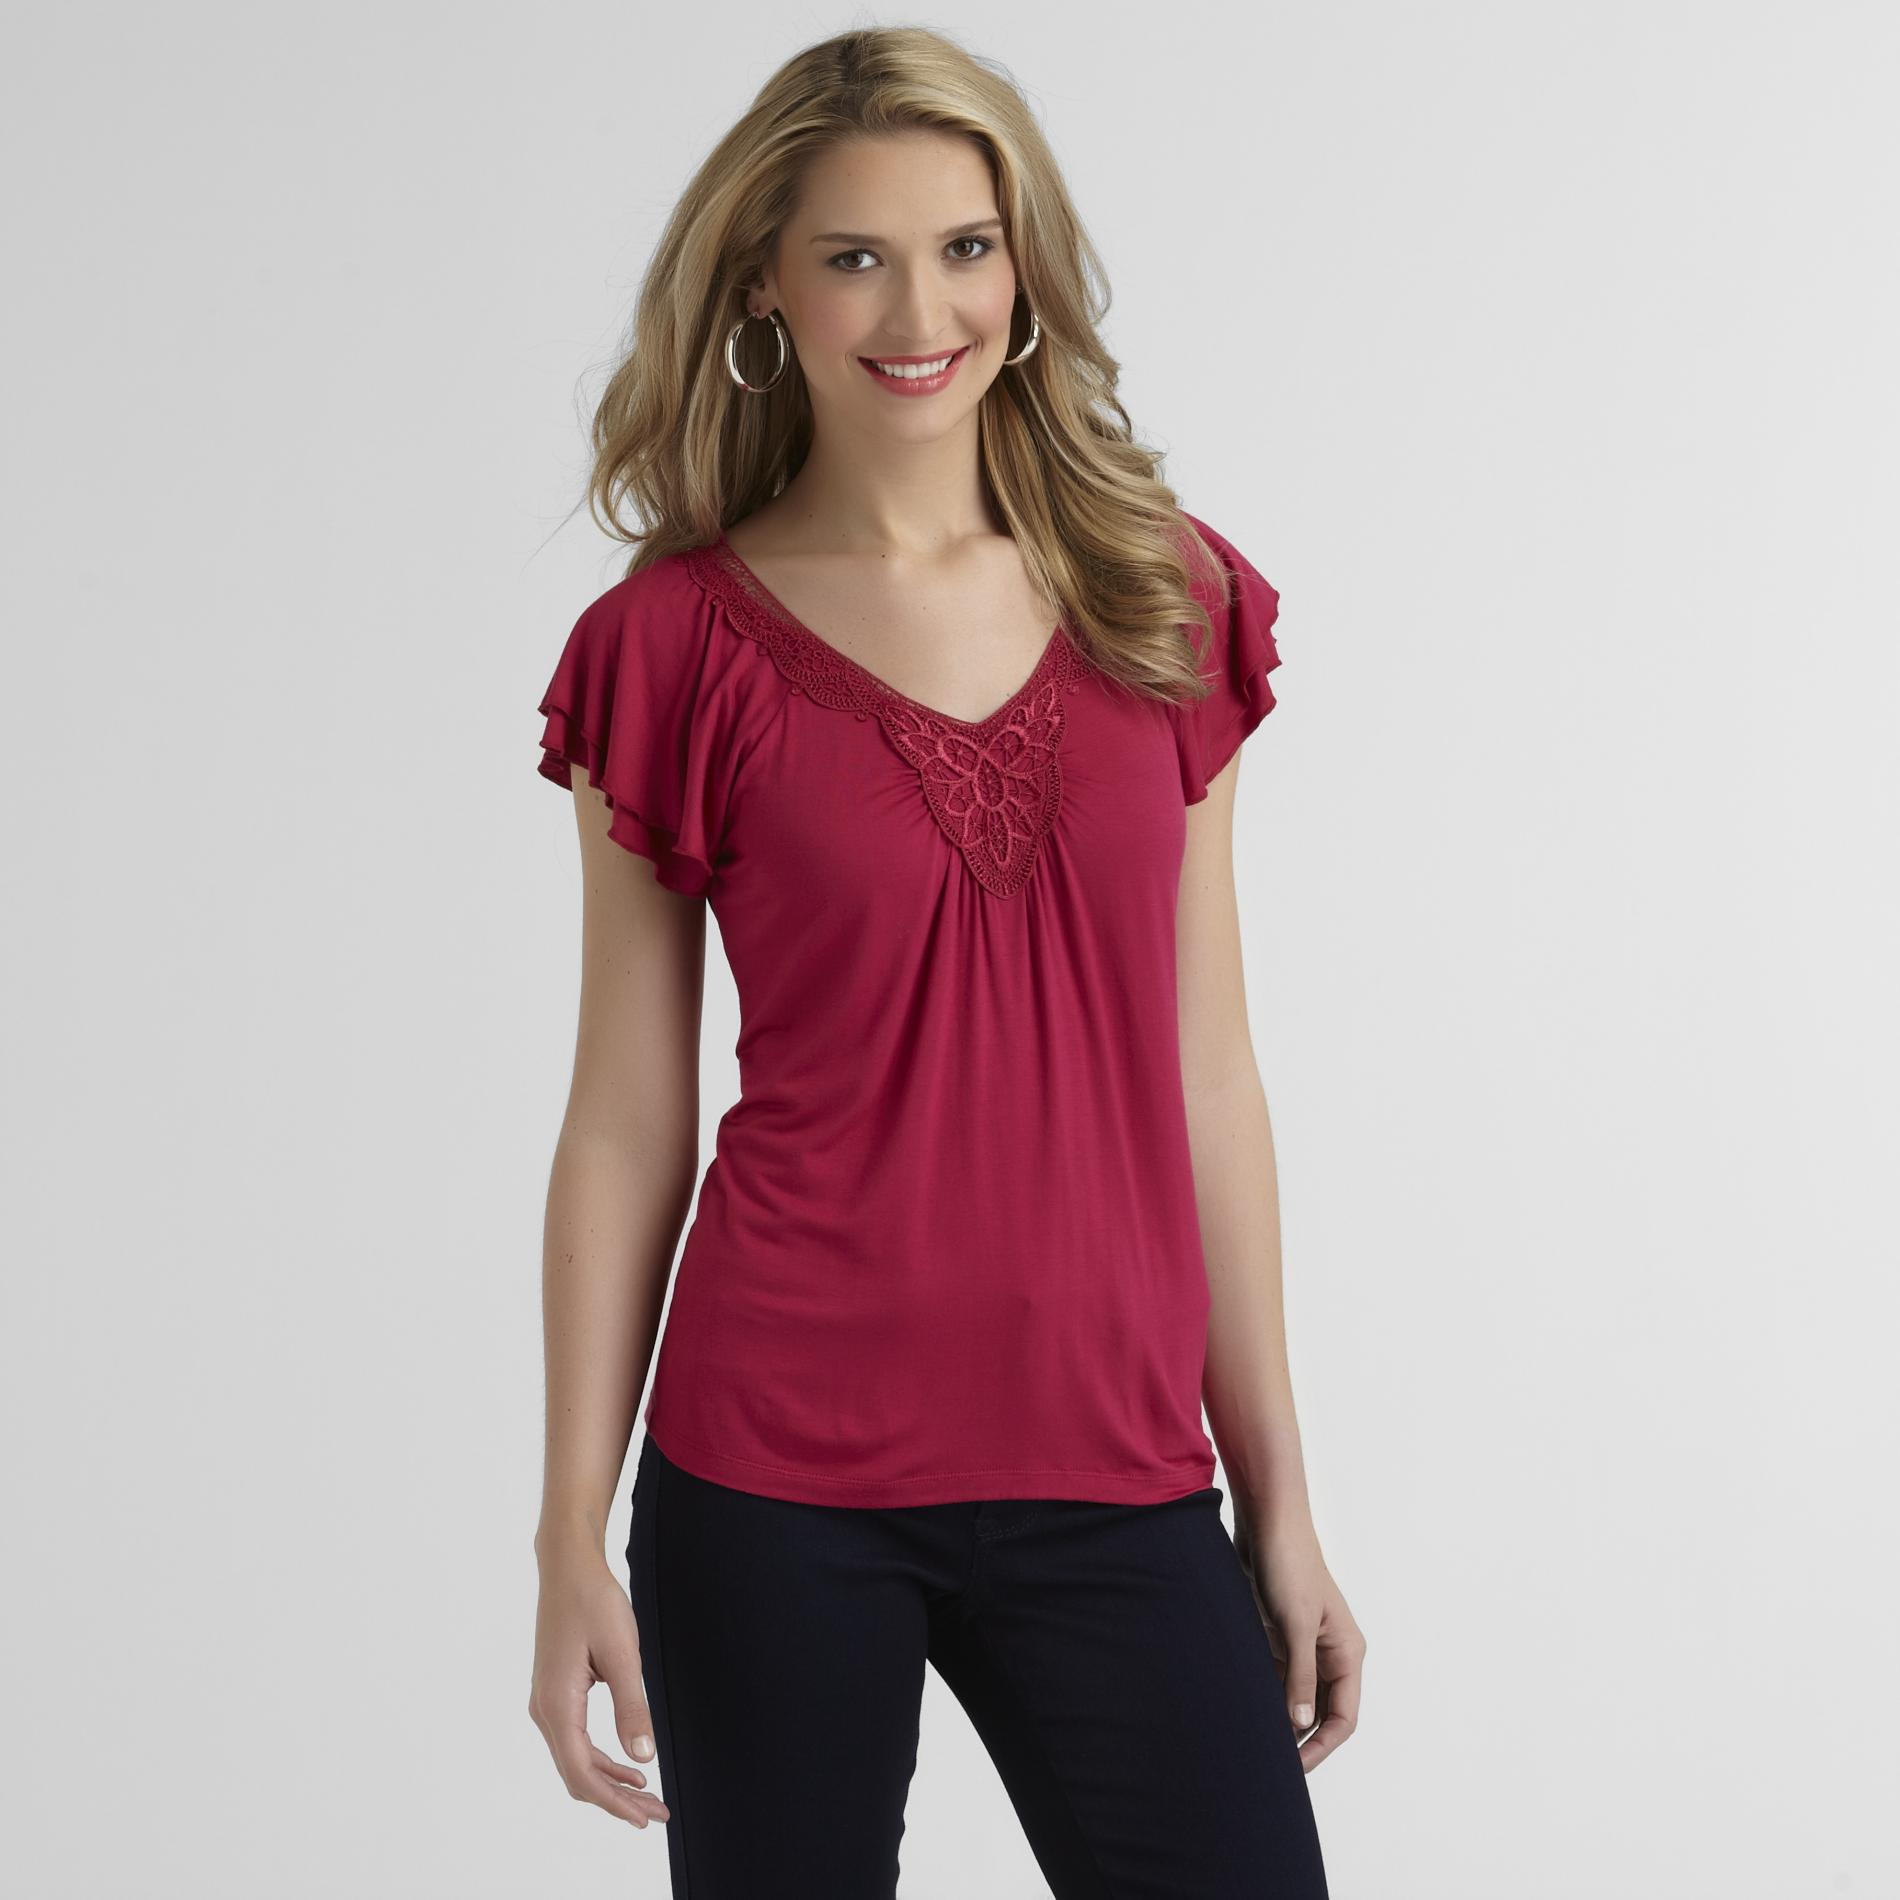 Covington Women's Crochet-Neck Top at Sears.com